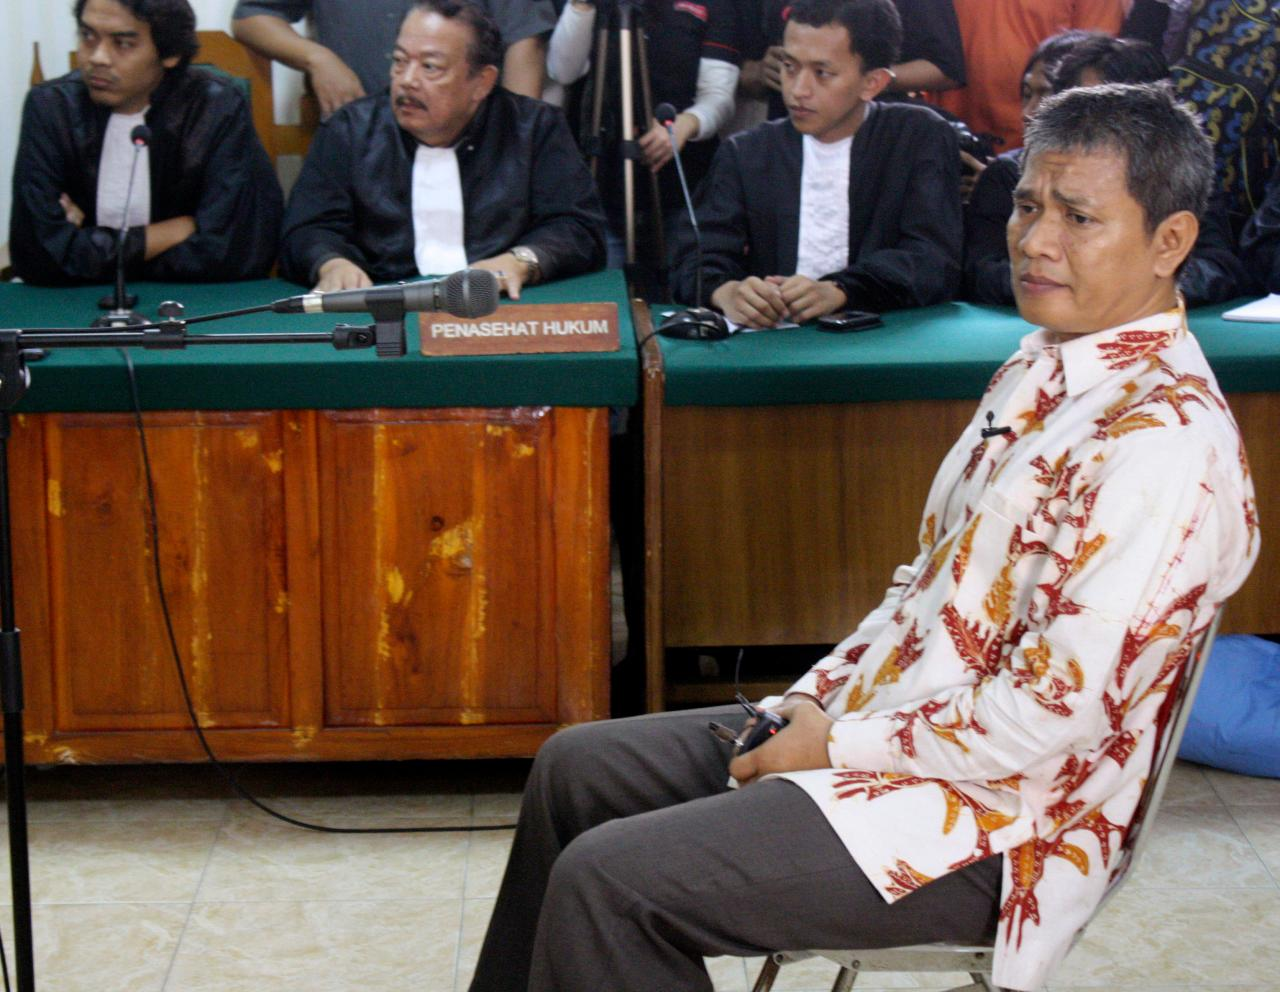 Member of Ahmadiyah sect Deden Sudjana, sits on the defendant's chair during his trial at a district court in Serang, Banten, Indonesia, Monday, Aug. 15, 2011. The man injured when Muslim hard-liners attacked members of his minority Islamic sect was sentenced Monday to six months in jail, more than some of the actual attackers. (AP Photo)